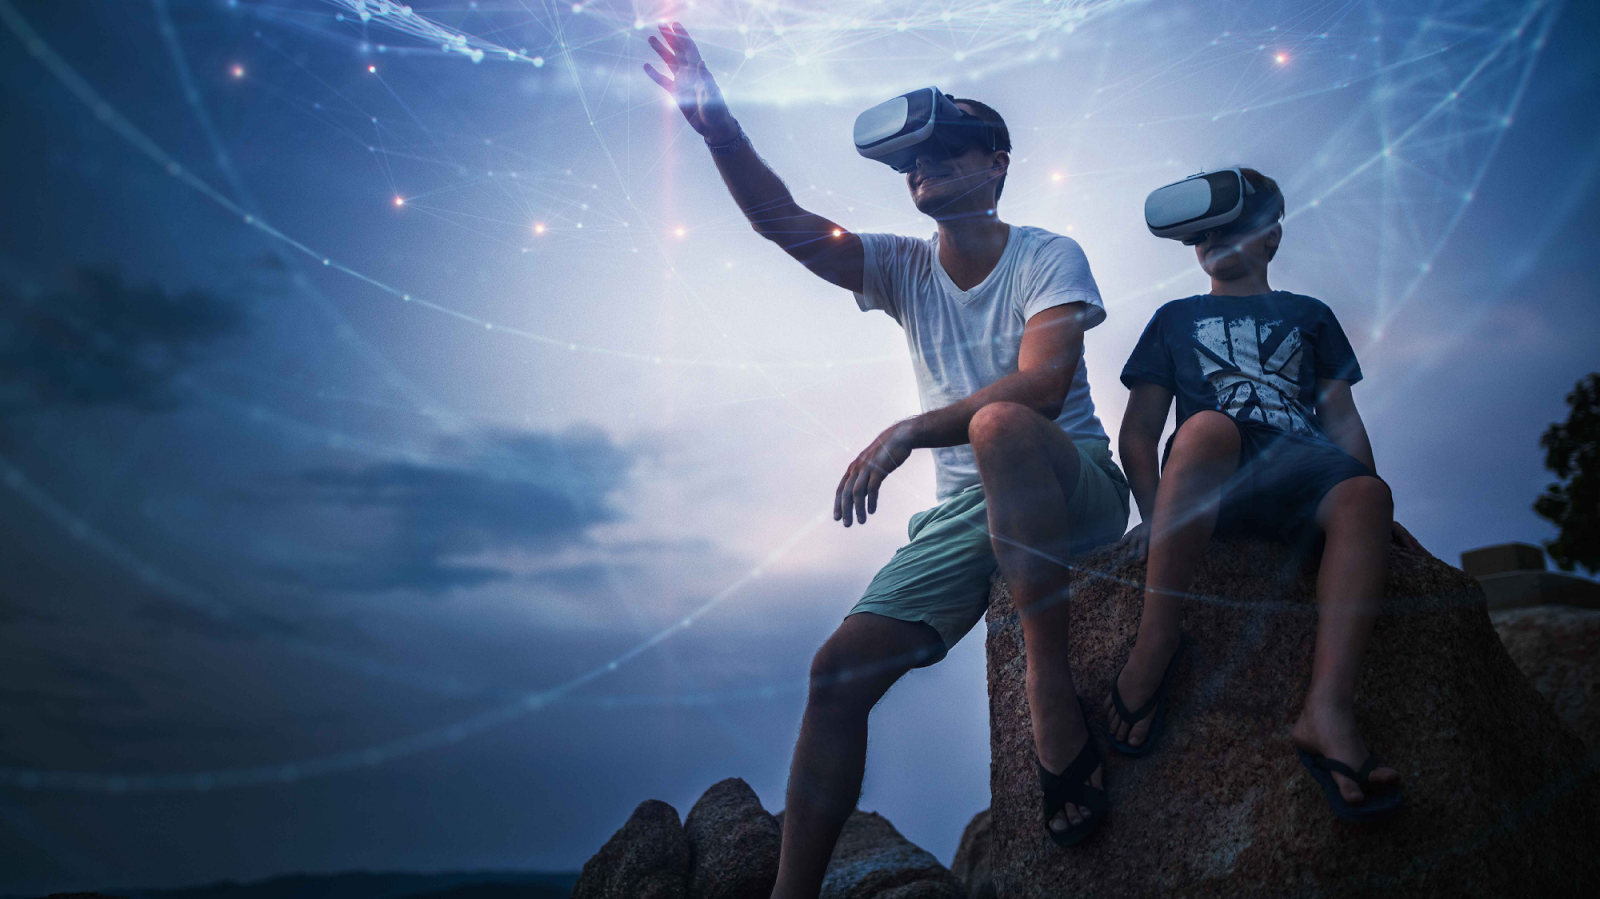 Stock image: People using a Virtual Reality device